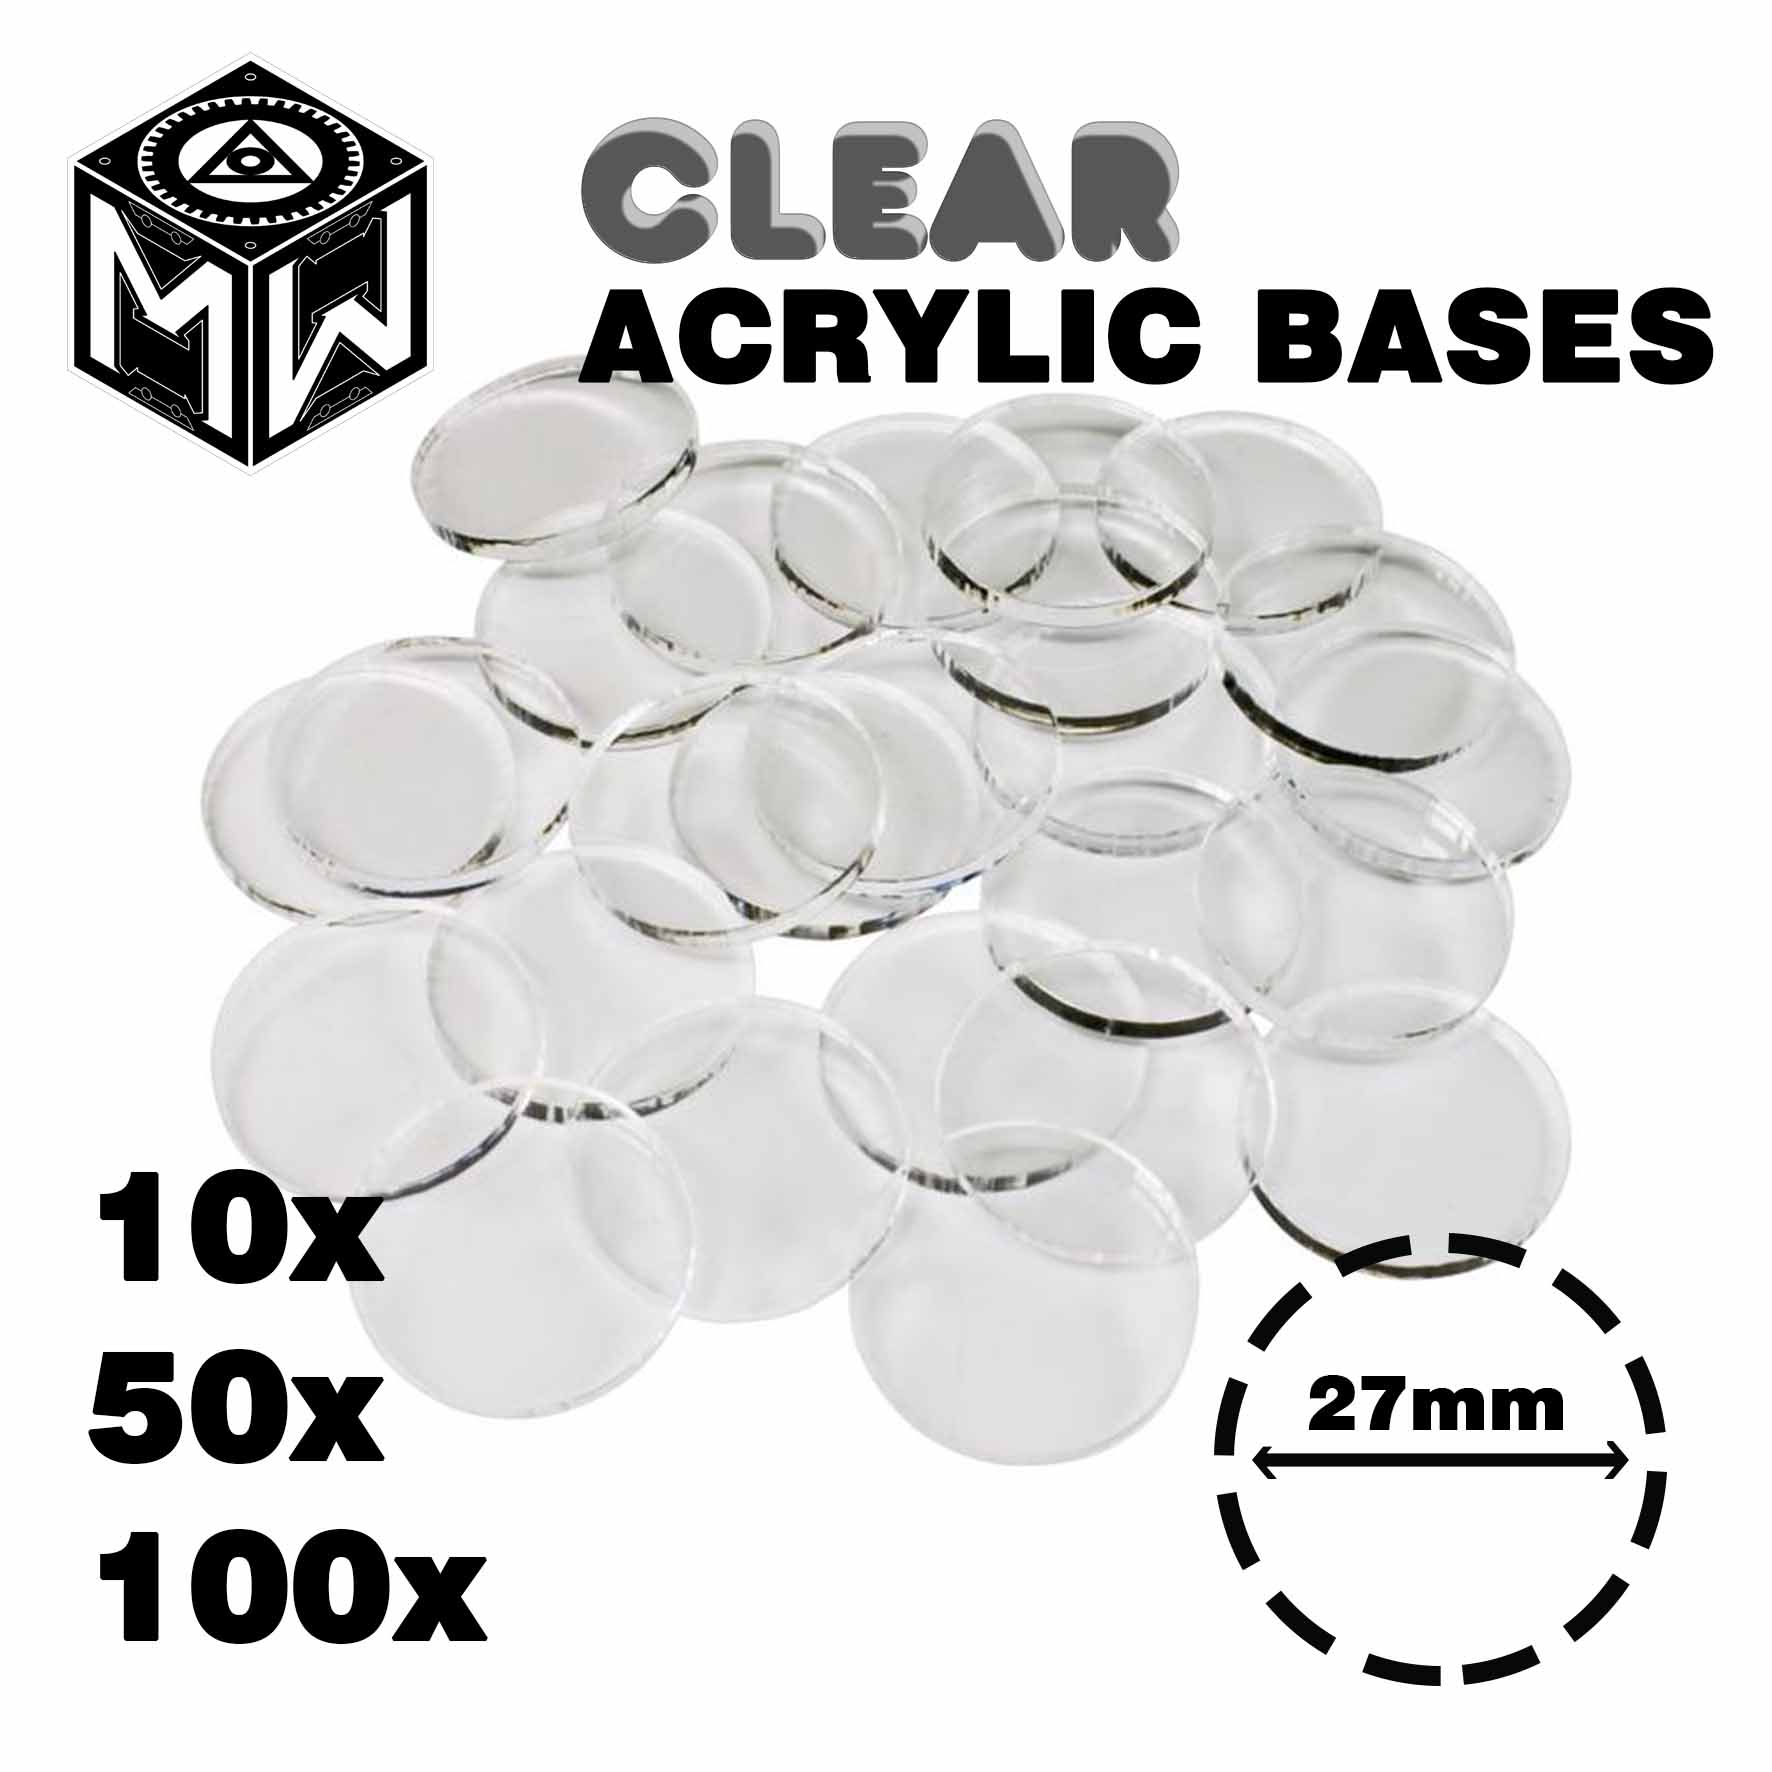 3mm Acrylic Clear Bases, Round 27mm